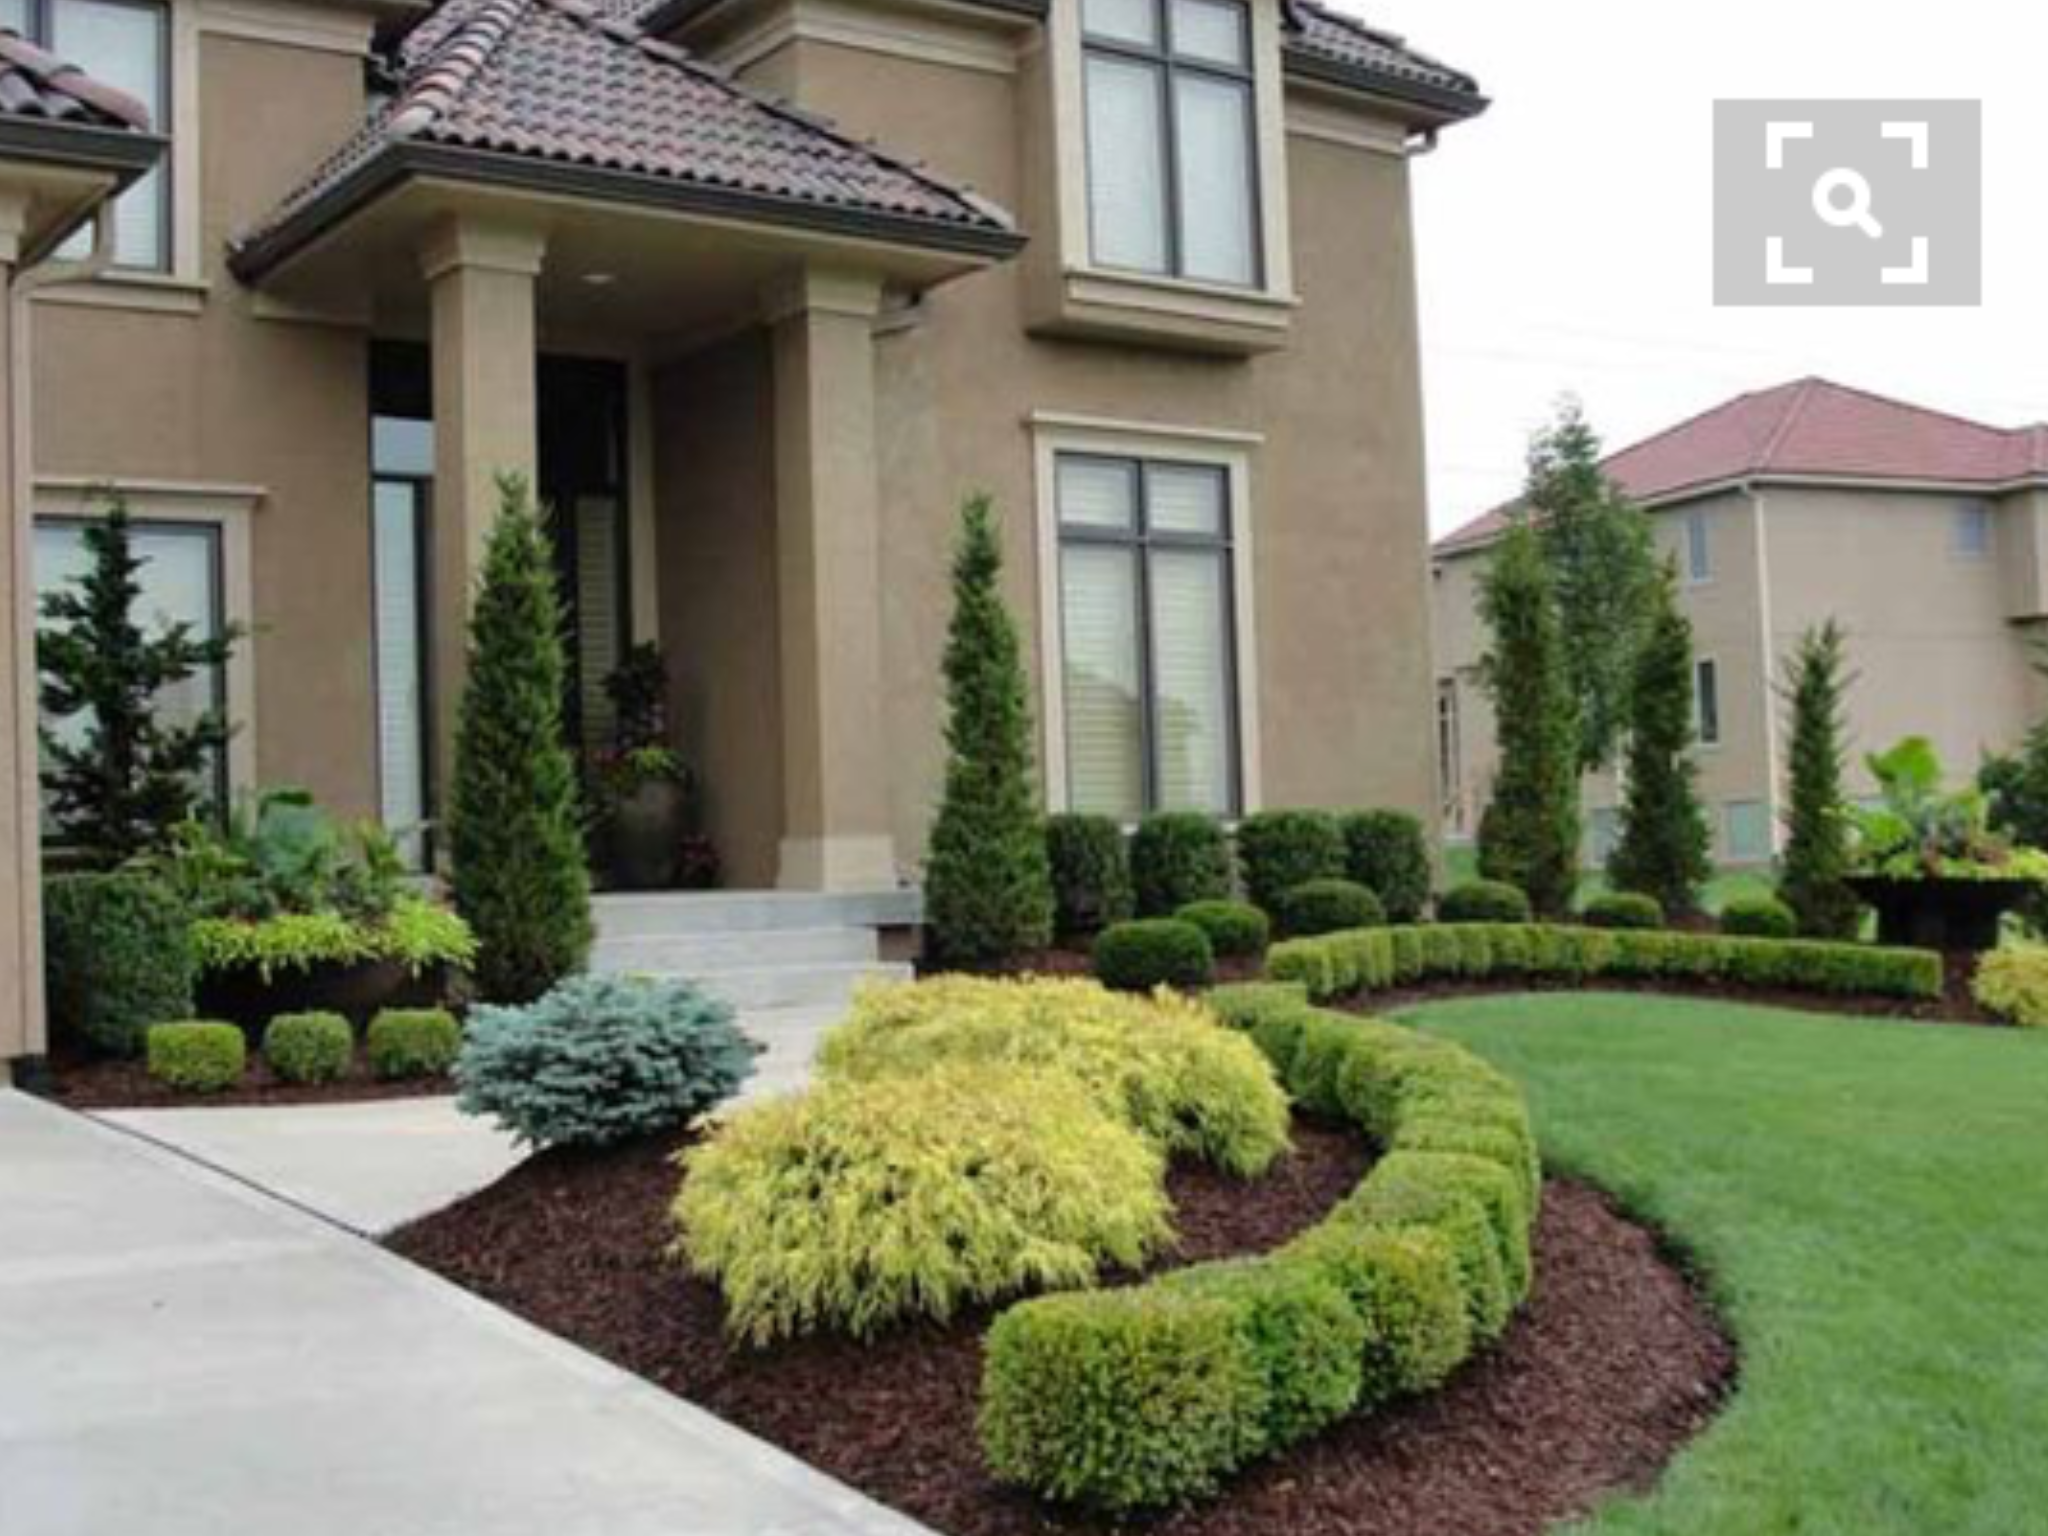 Pin by Karen Boster on Landscape | Residential landscaping ... on Luxury Front Yard Landscape id=42503